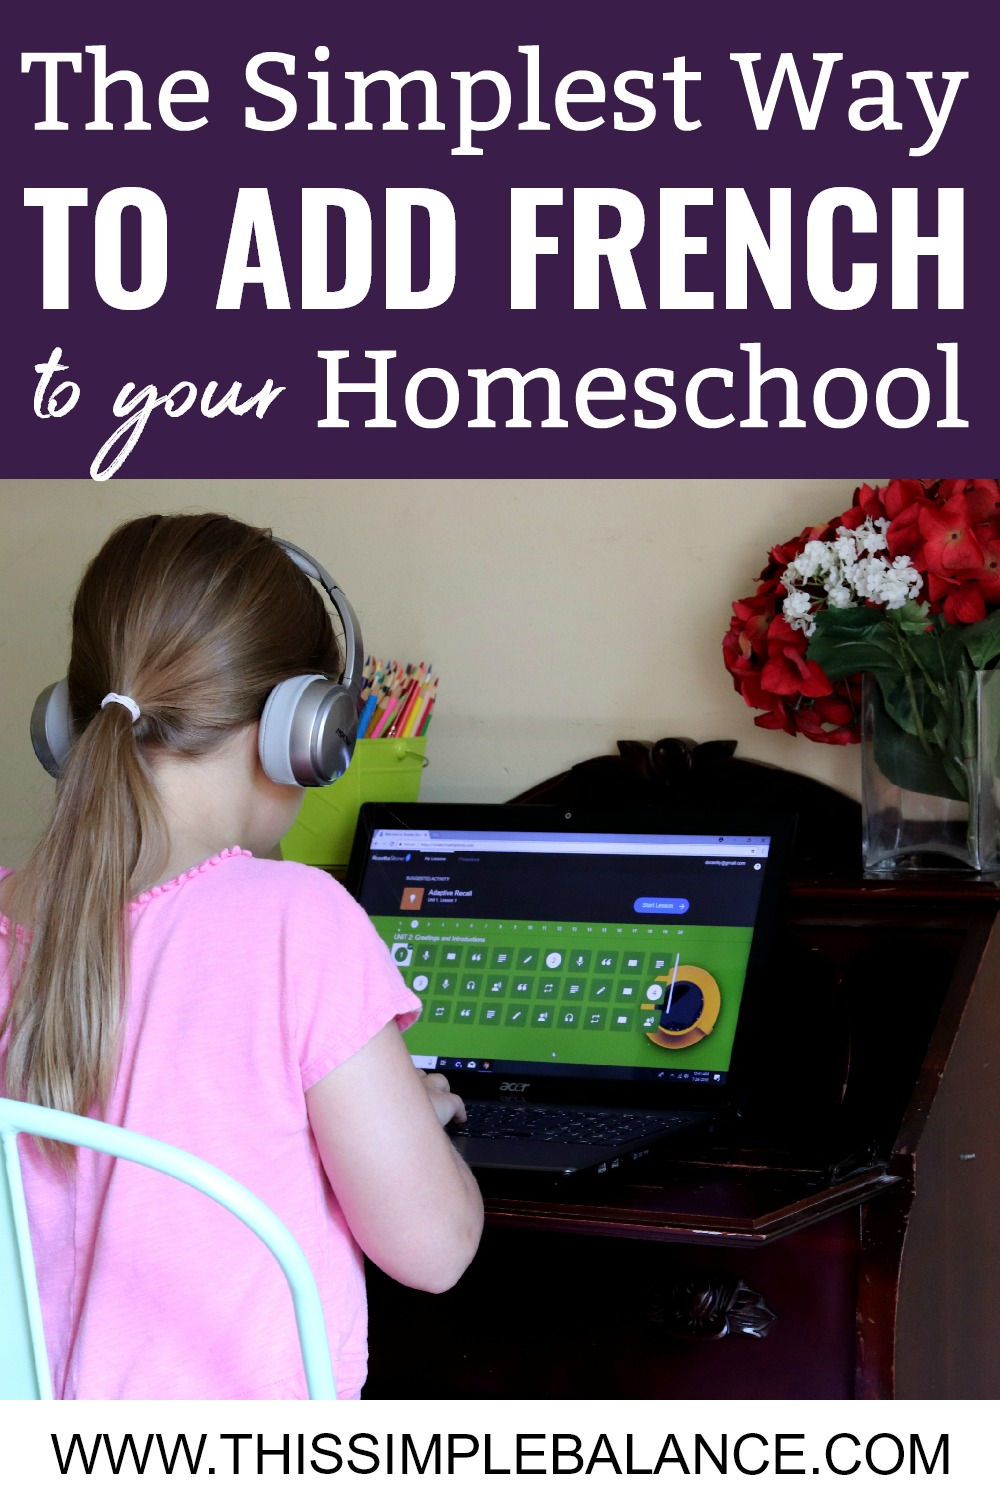 Do you want to homeschool French, but don't have time to teach it yourself? Your kids can learn French independently using Rosetta Stone Homeschool. It's the easiest way to add foreign language learning to your homeschool.